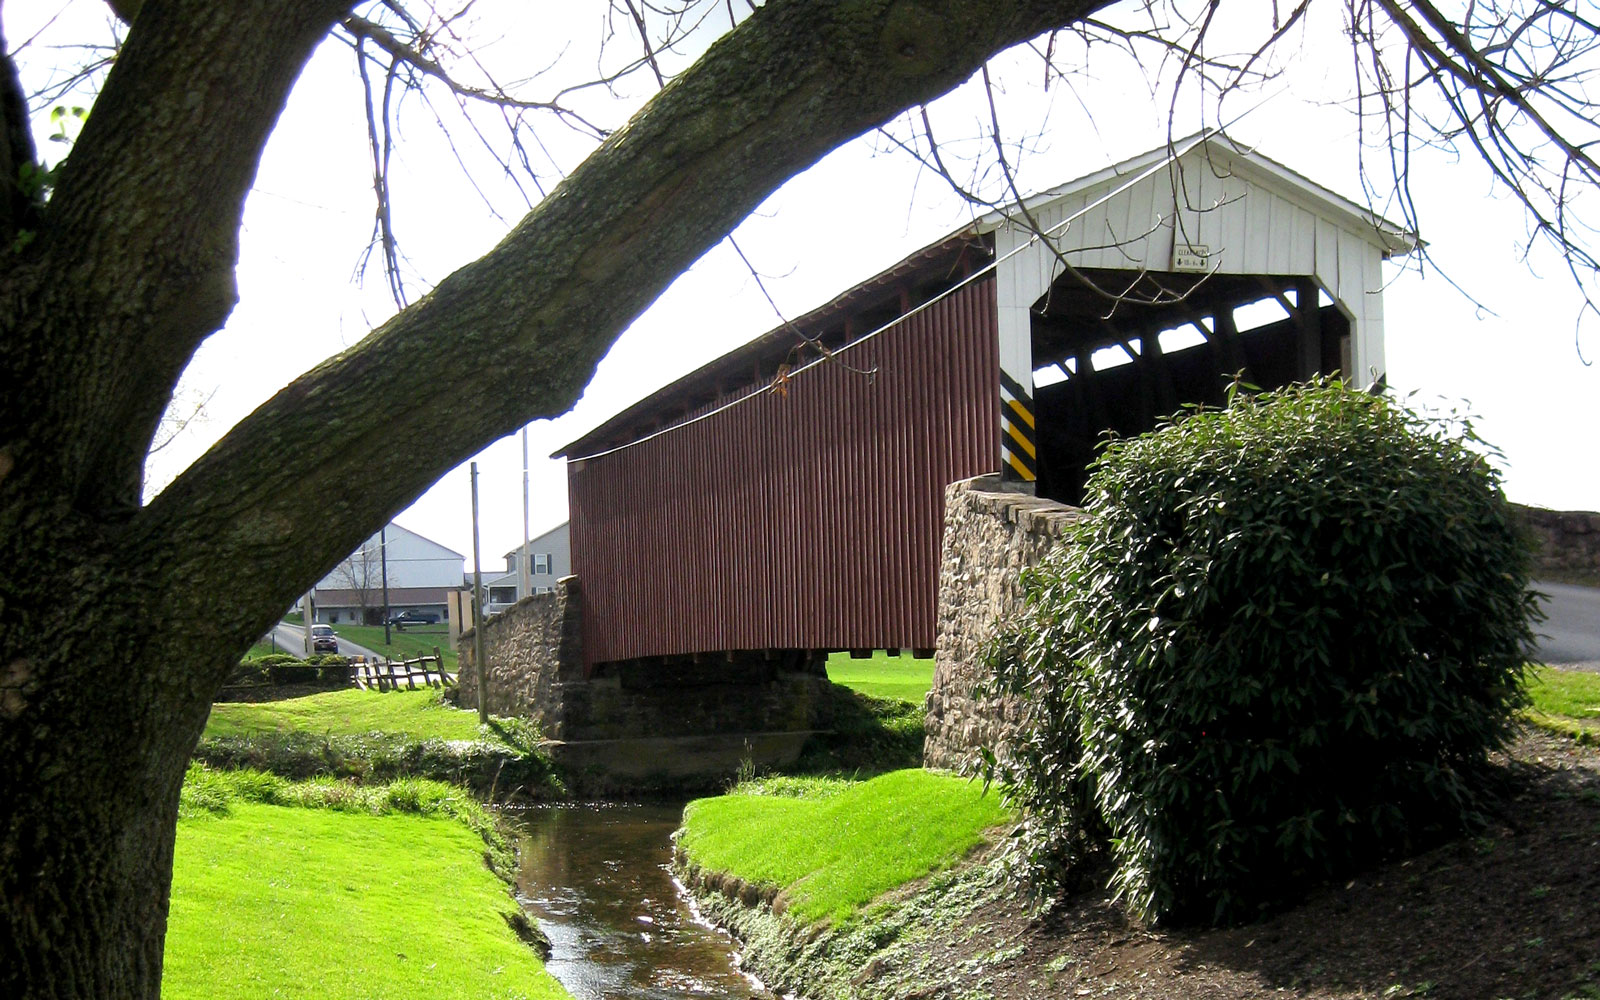 America's Most Beautiful Covered Bridges: Weaver's Mill